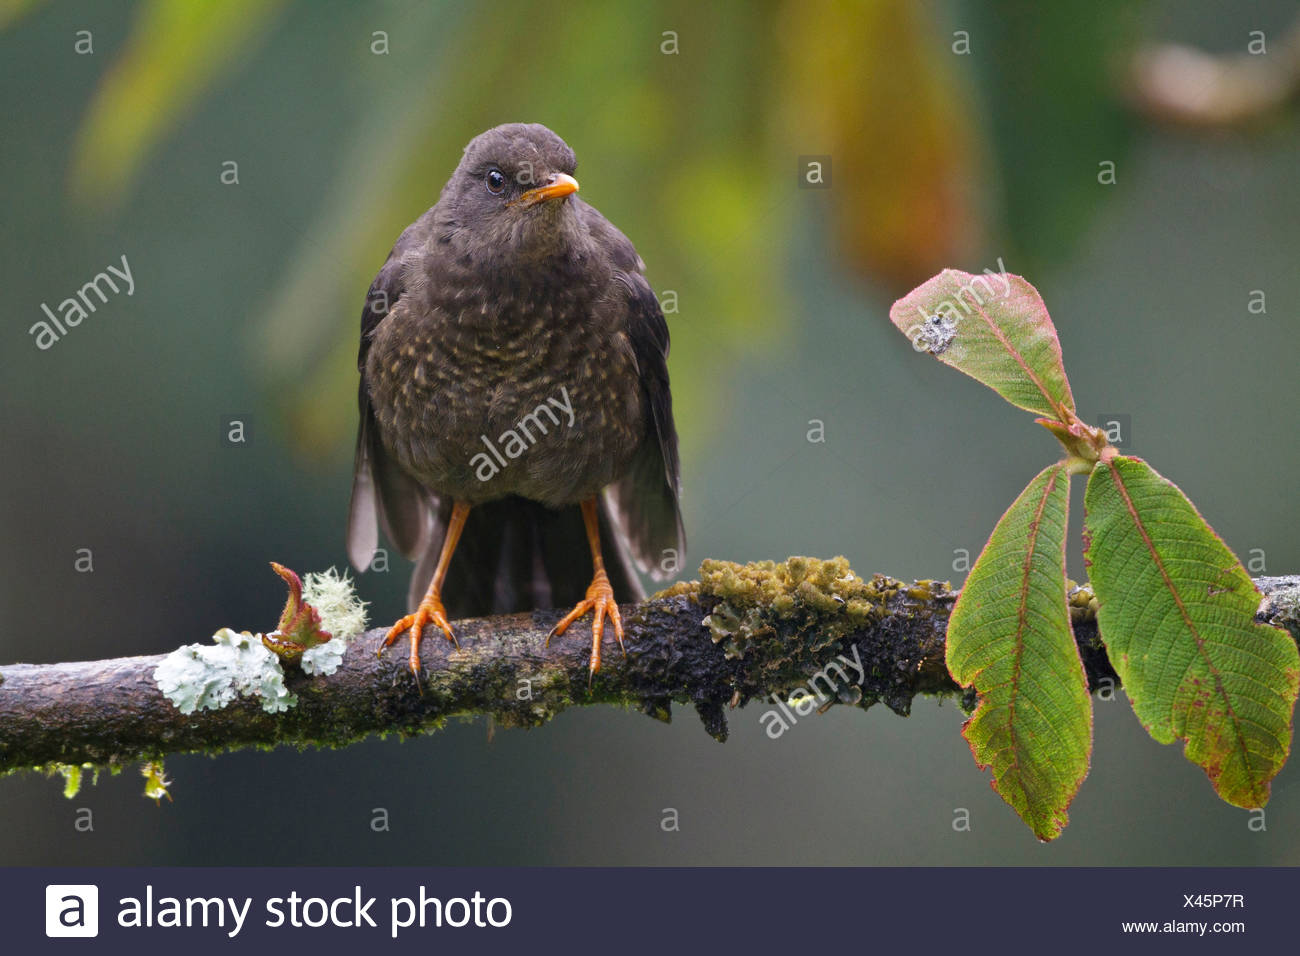 Great Thrush (Turdus fuscater) perched on a branch in Ecuador. - Stock Image